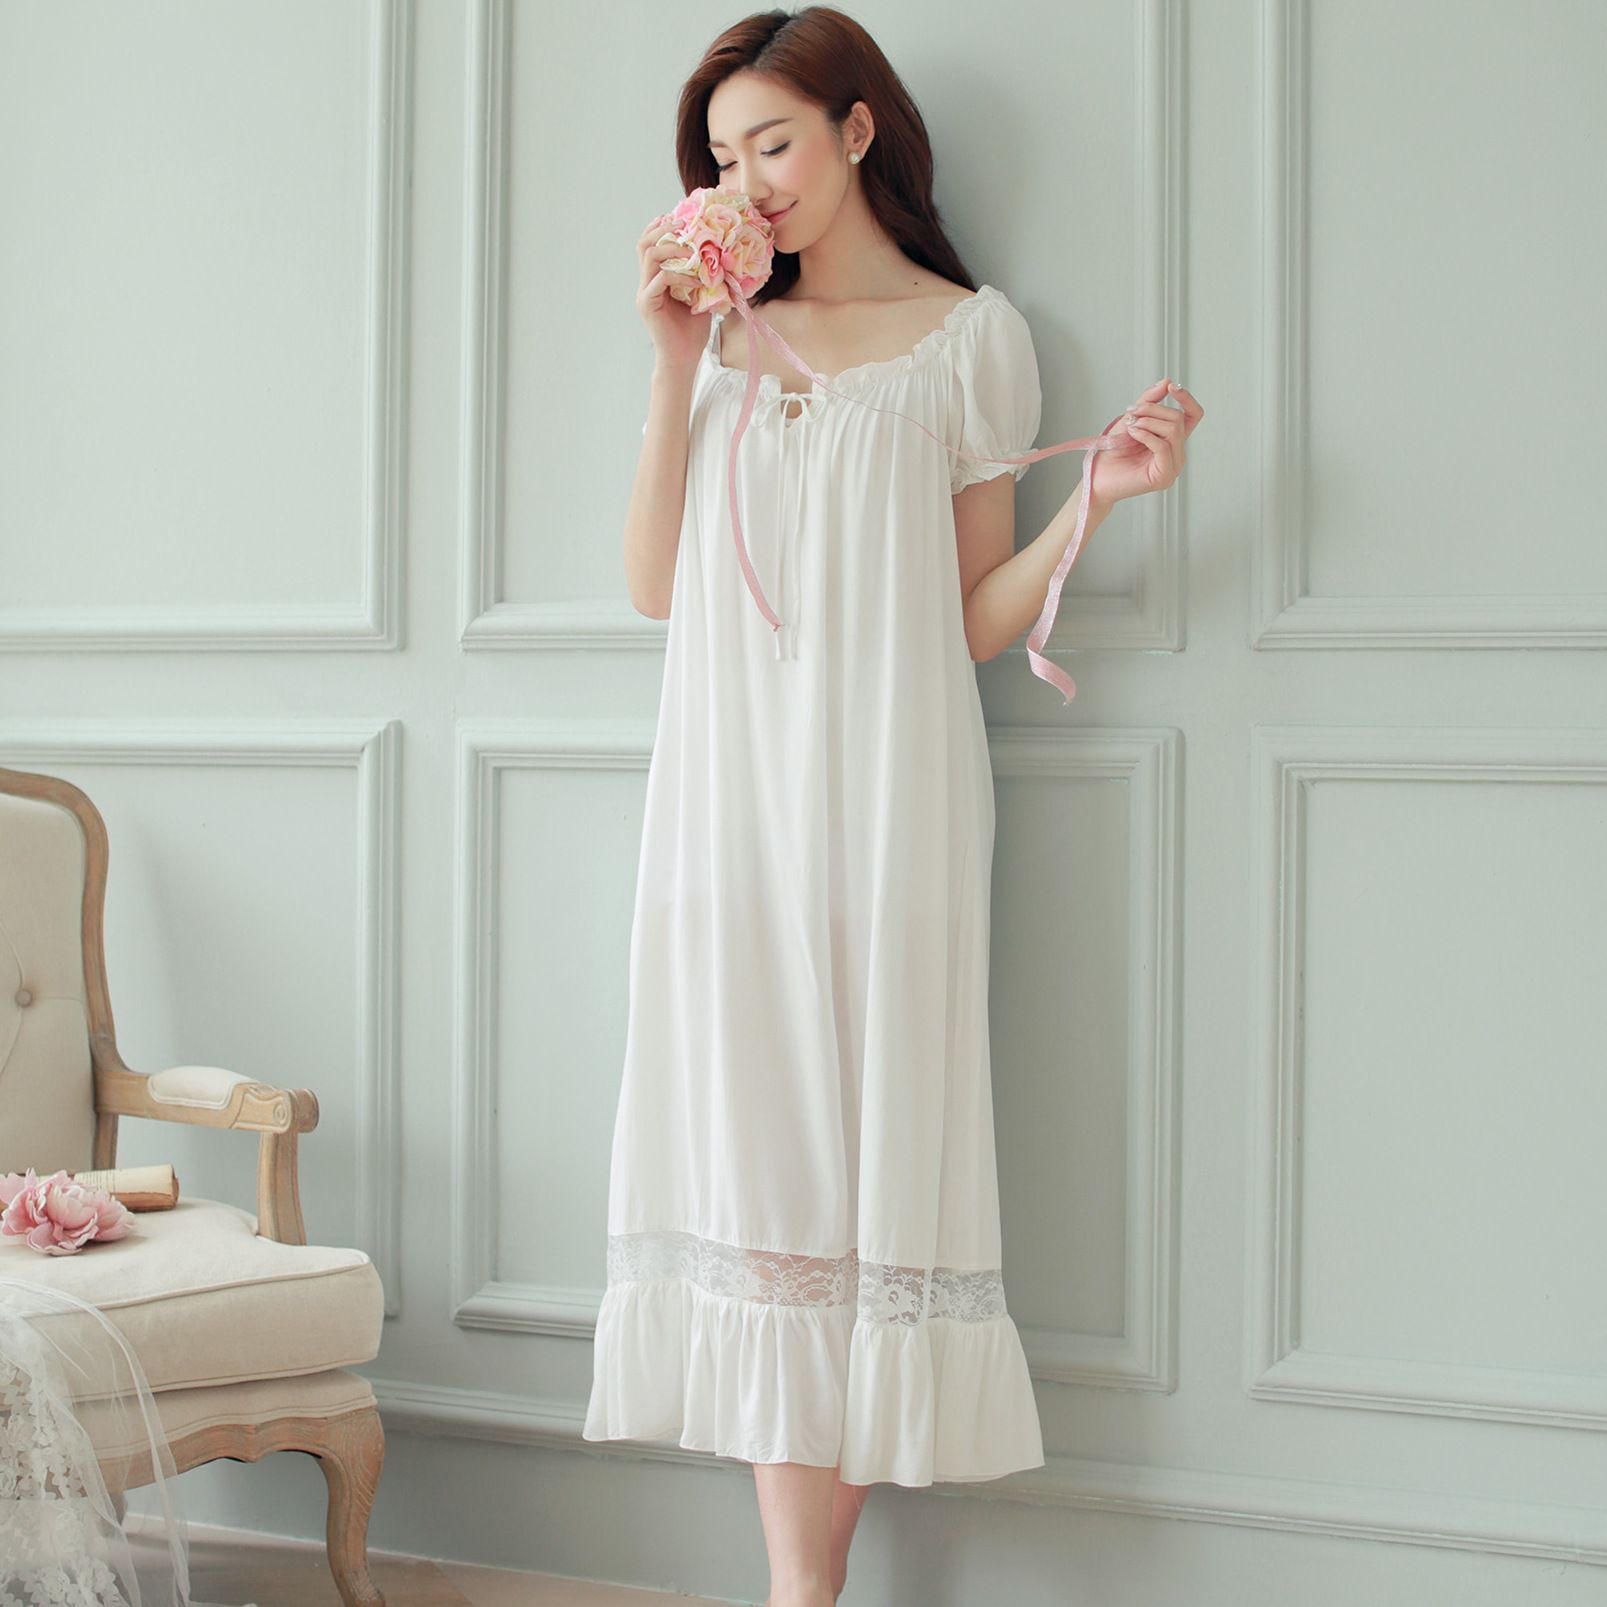 ec3312244c Hot Womens Long Sleeping Dress White Nightgown Short Sleeve Summer  Nightdress Elegant Vintage Nightgowns Home Dress For Sleeping-in Nightgowns    Sleepshirts ...